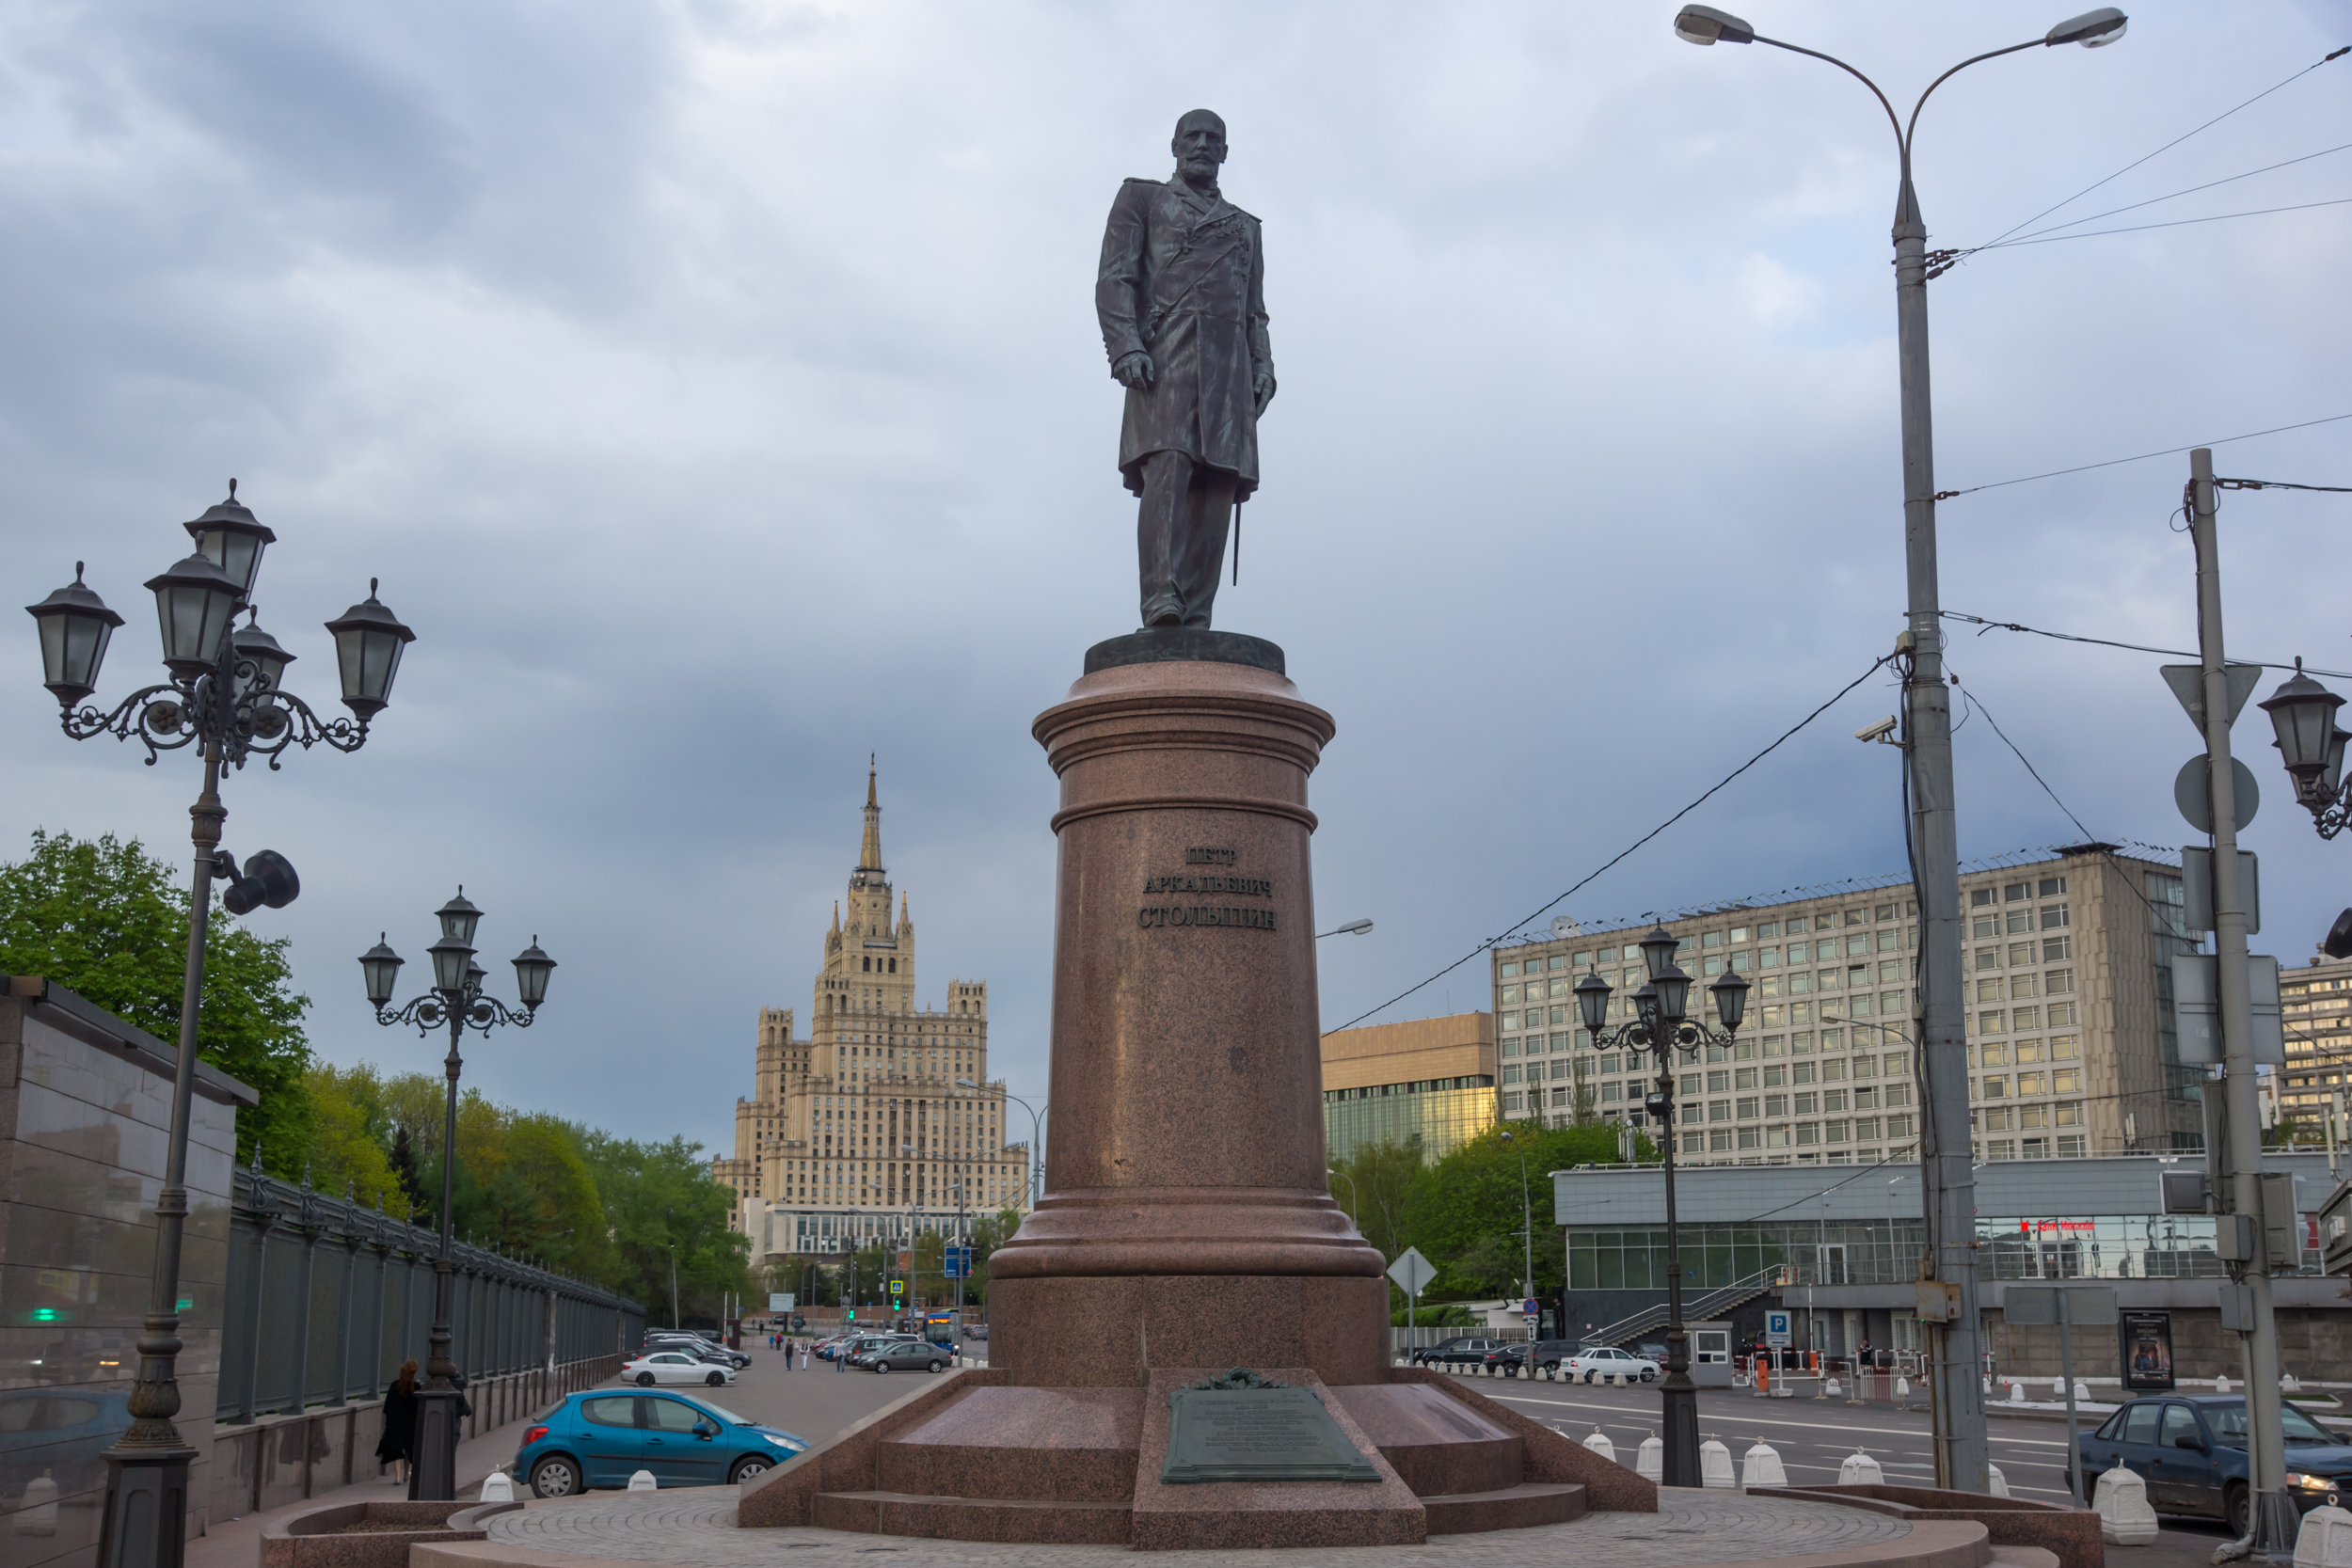 Monument to Pyotr Stolypin Dranchuk in Moscow